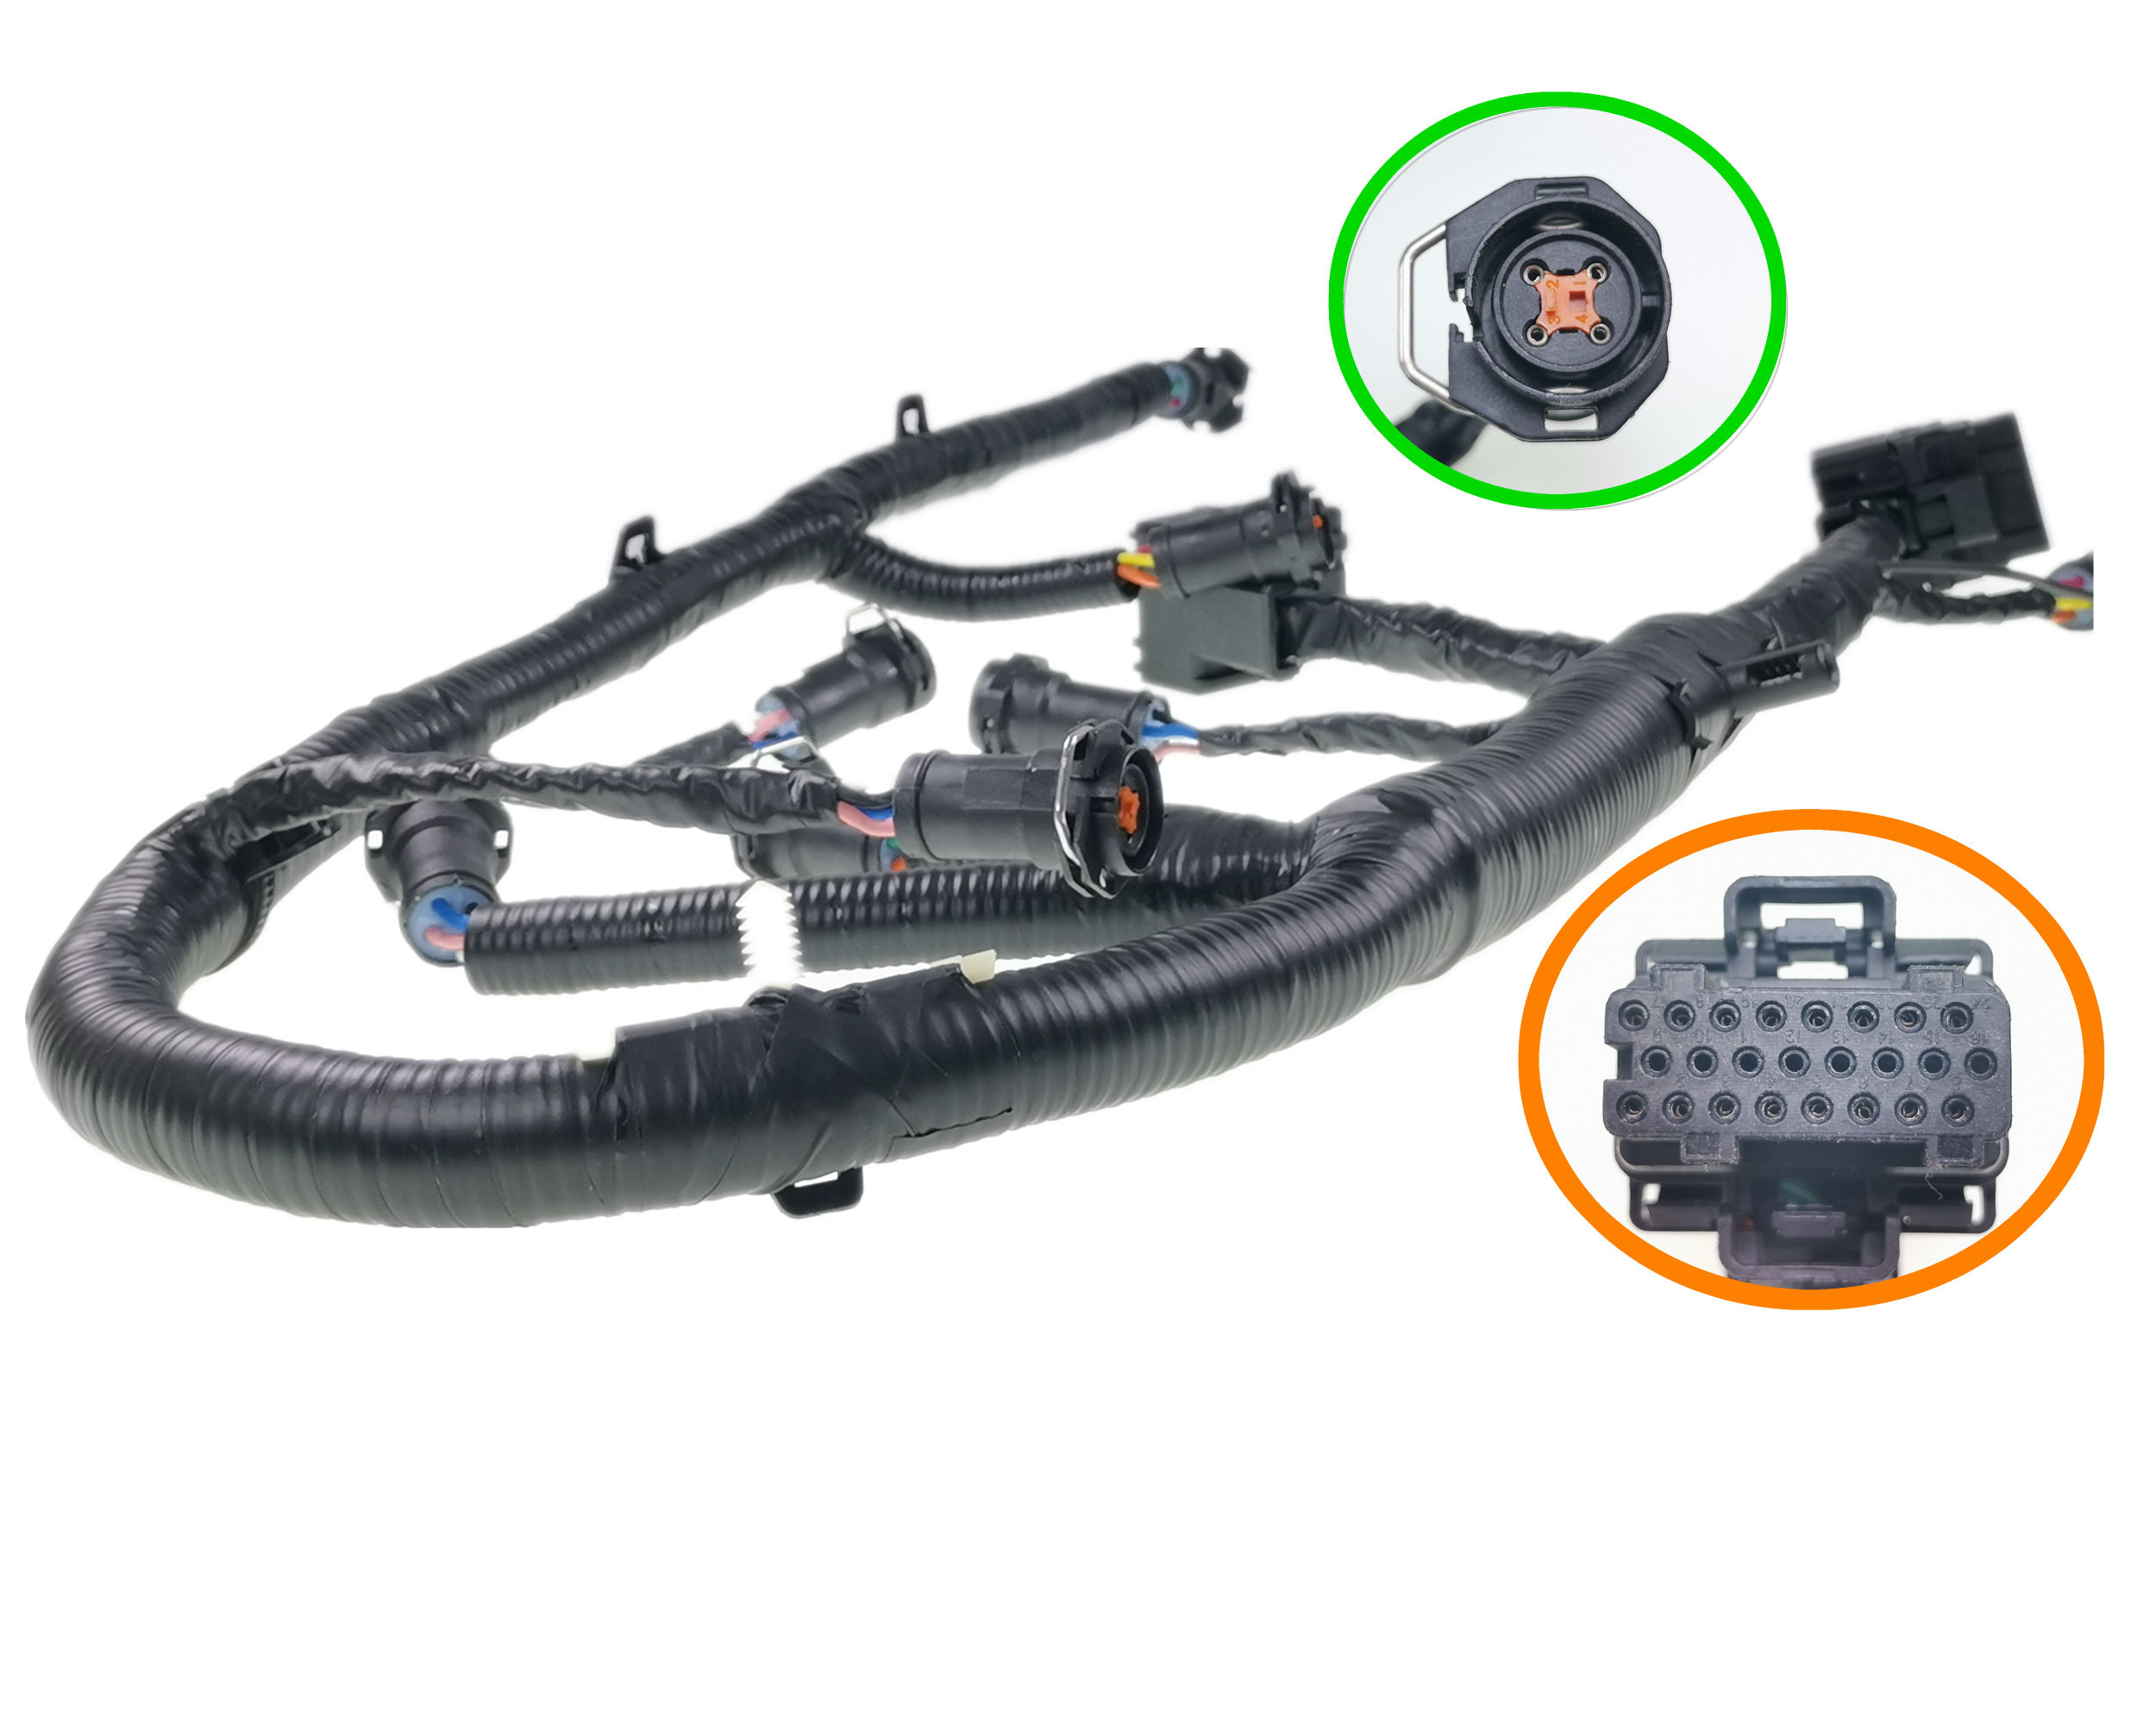 Automotive Cable Harness NEW Trailering Mirror Wiring Harness Right Left Set For Truck With IATF16949 UL Certification Manufacture In DongGuan